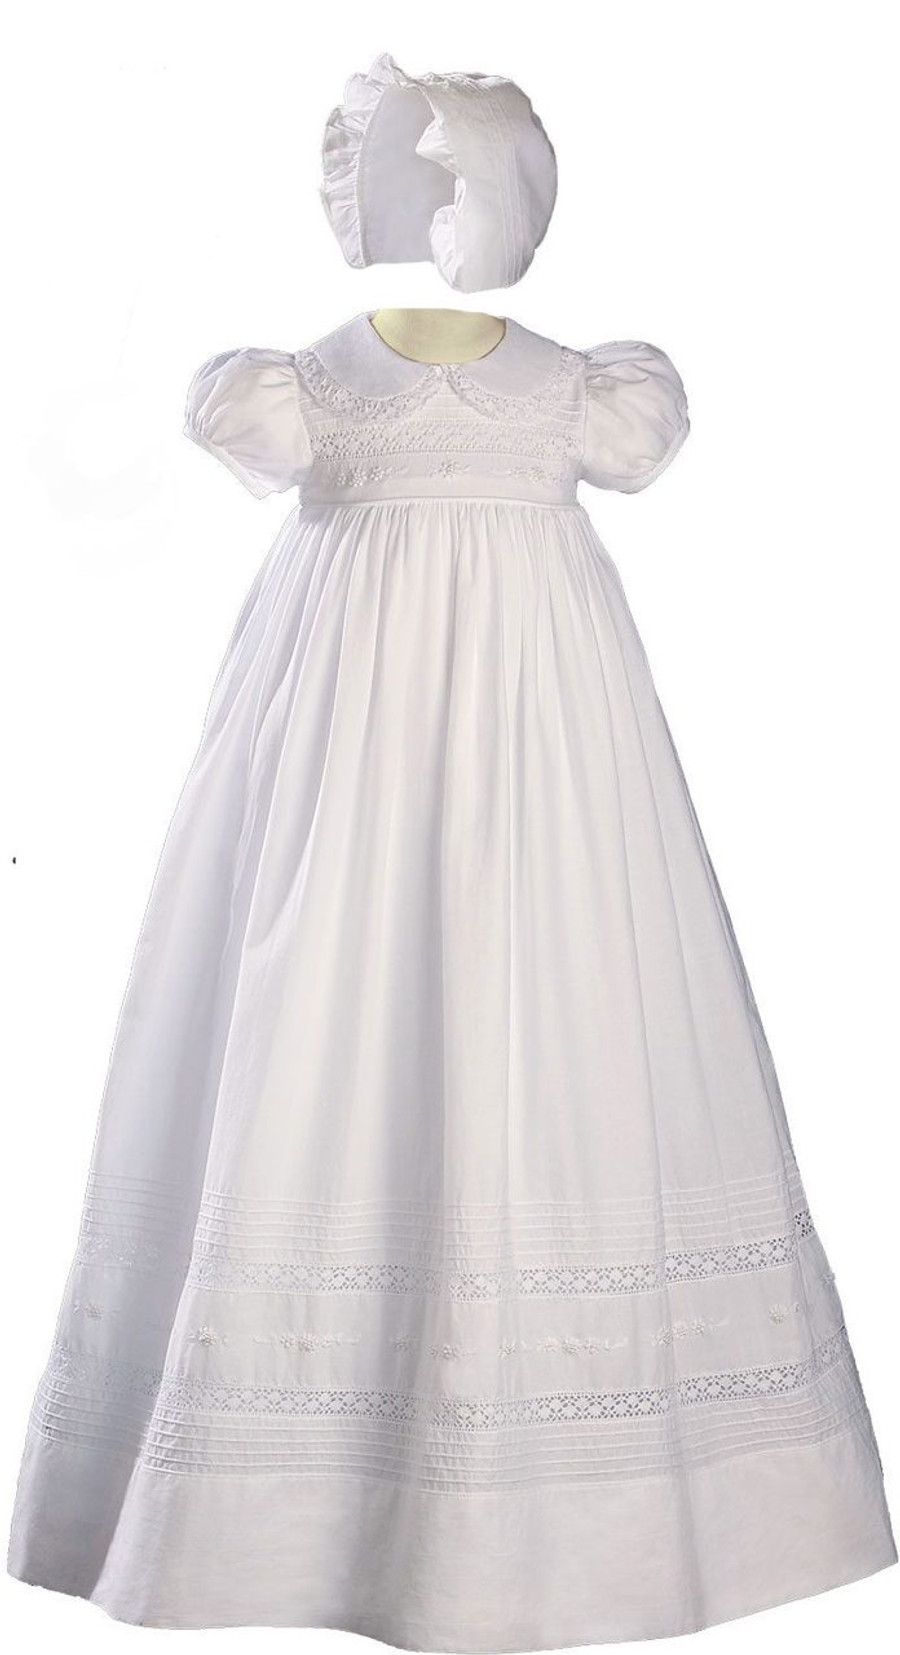 "Girls  White Cotton Short Sleeve Christening Baptism Gown with Hand Embroidery, 33"" Length"